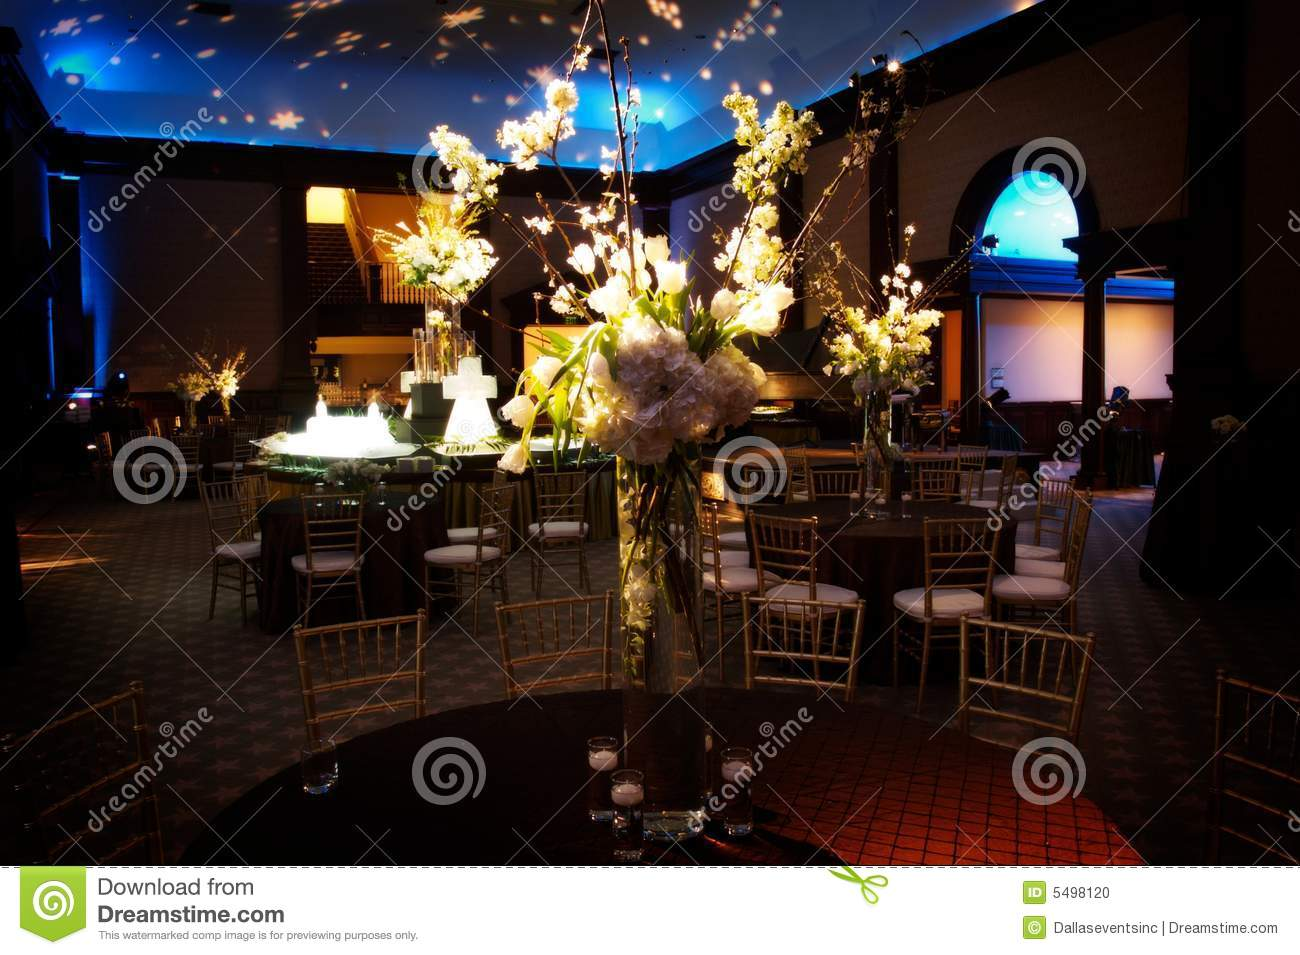 Elaborate table setting at a wedding reception